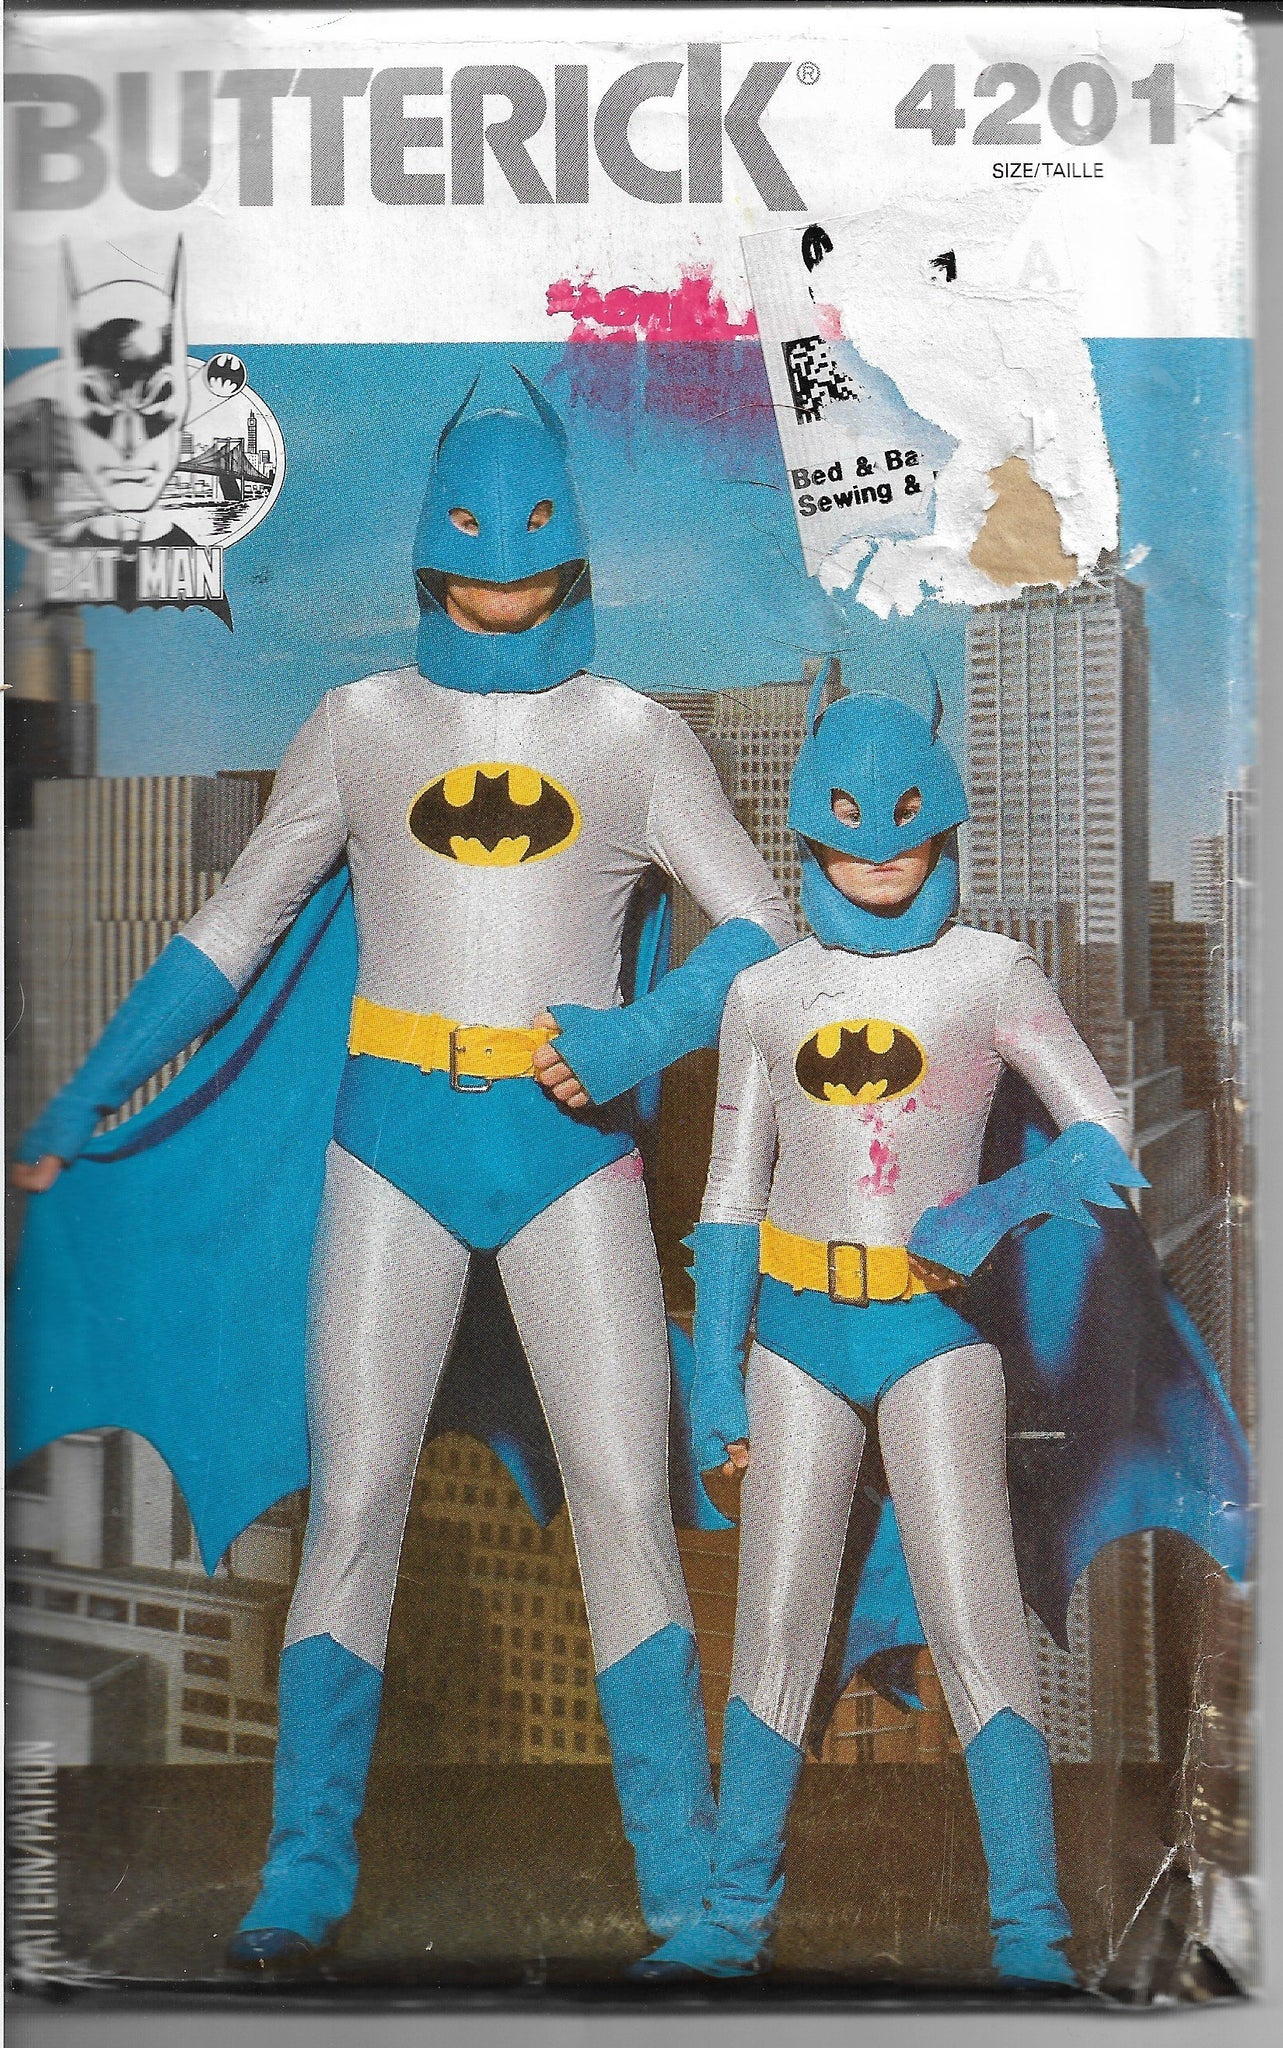 Butterick 4201 Mens Batman Halloween Costume Vintage  1980s Sewing Pattern - VintageStitching - Vintage Sewing Patterns